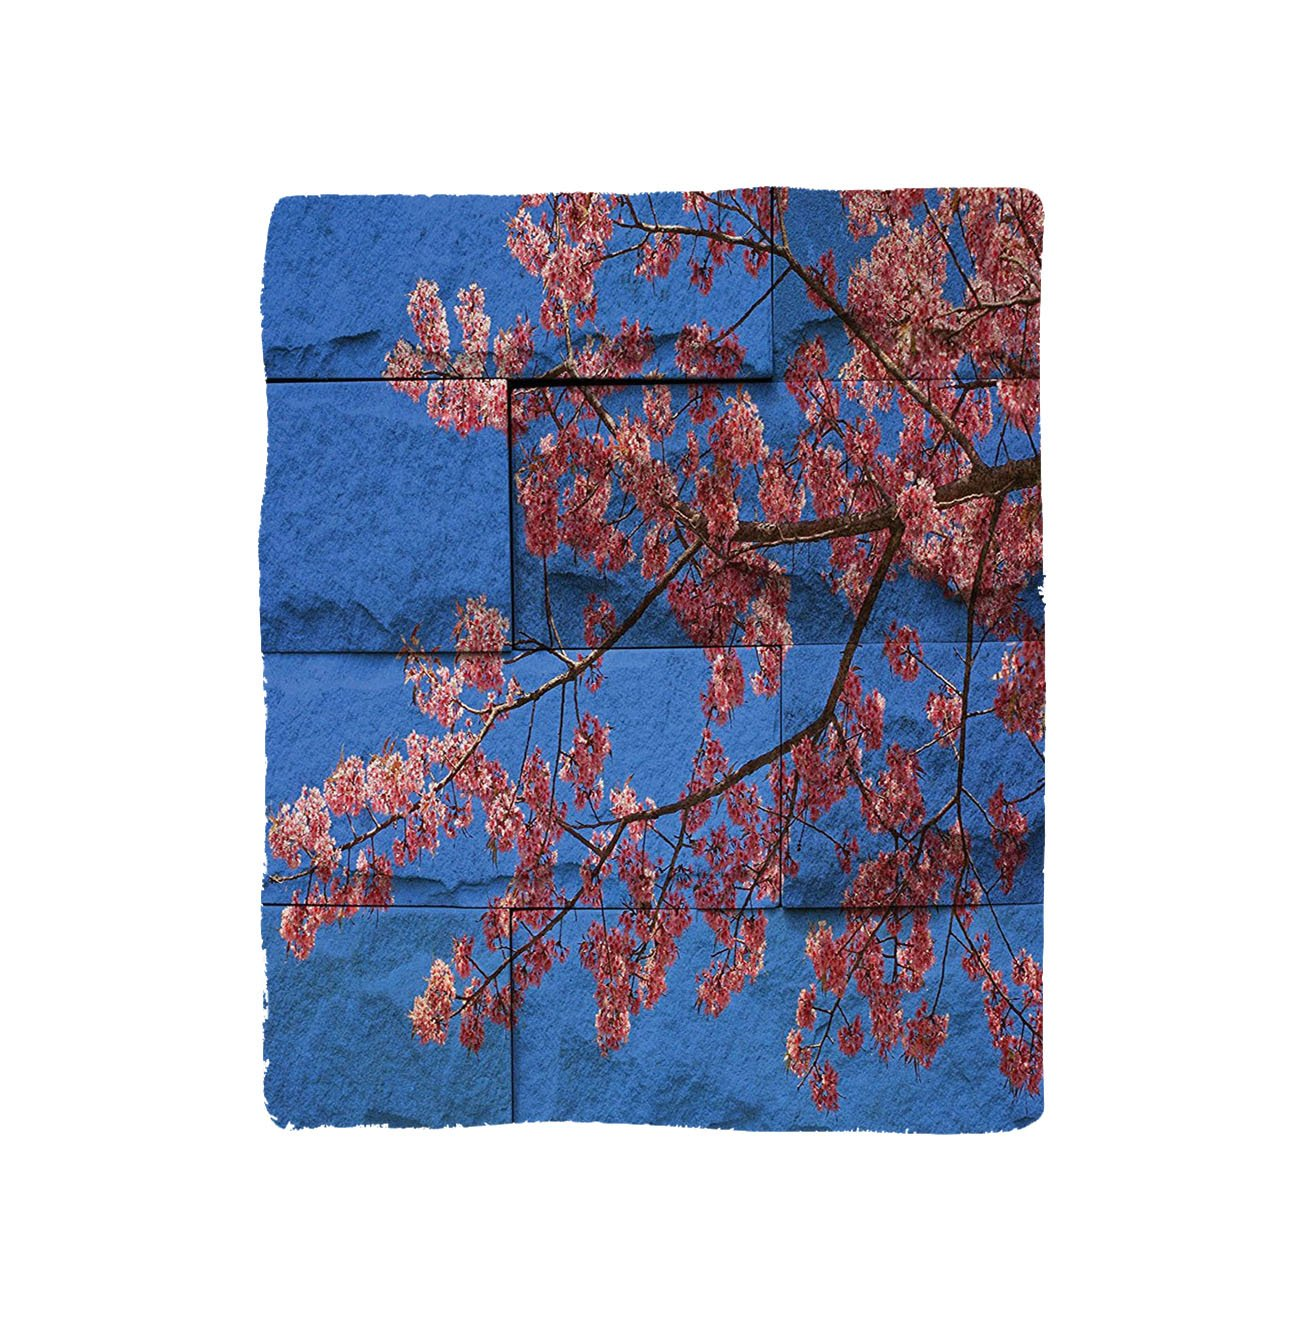 VROSELV Custom Blanket Rustic Home Thai Sakura Blossom Mural Branch with Flowers Spring Floral Beauty Print Bedroom Living Room Dorm Pink Blue by VROSELV